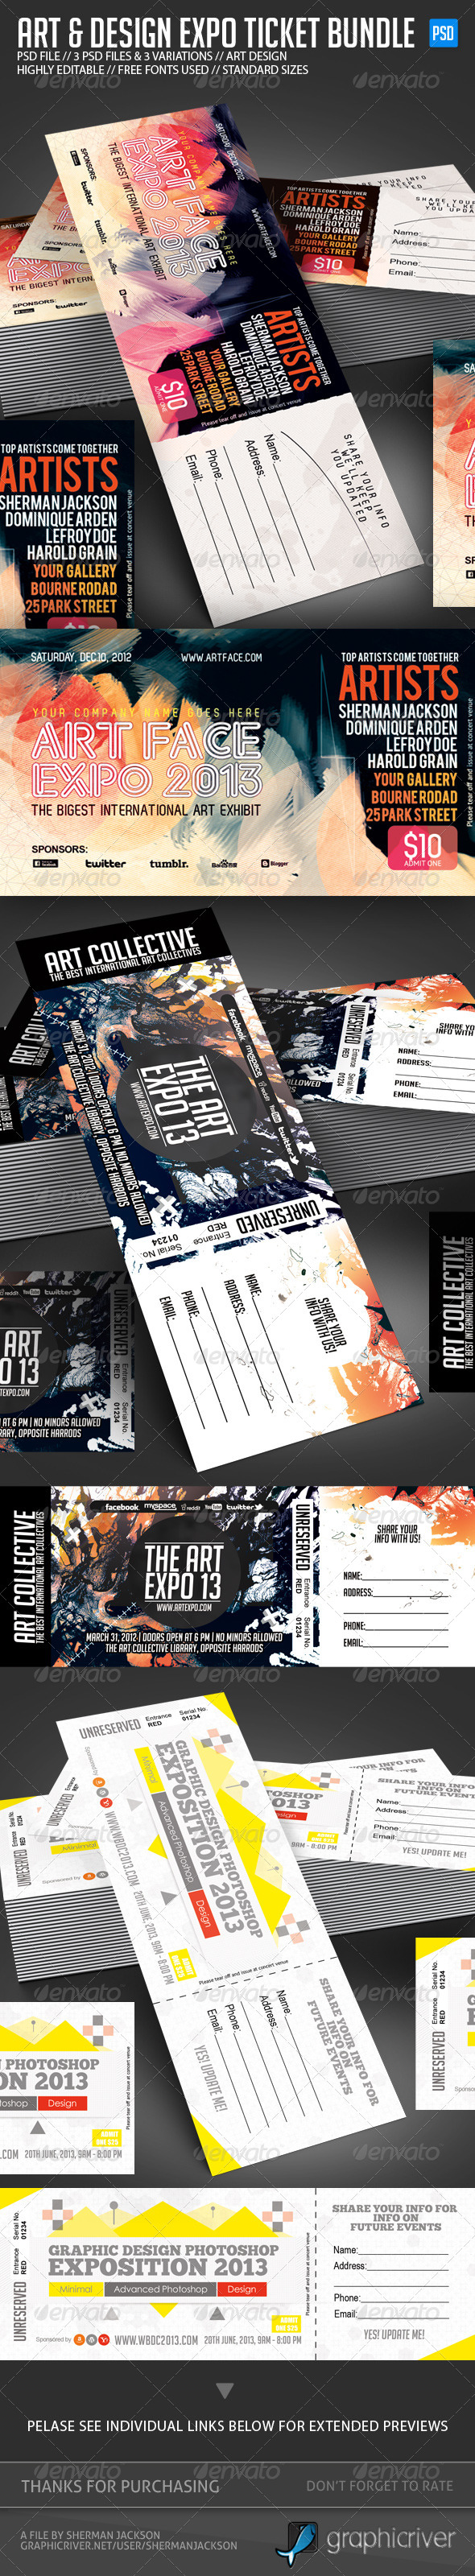 GraphicRiver Design & Art Expo Show Passes Tickets Bundle 4959143